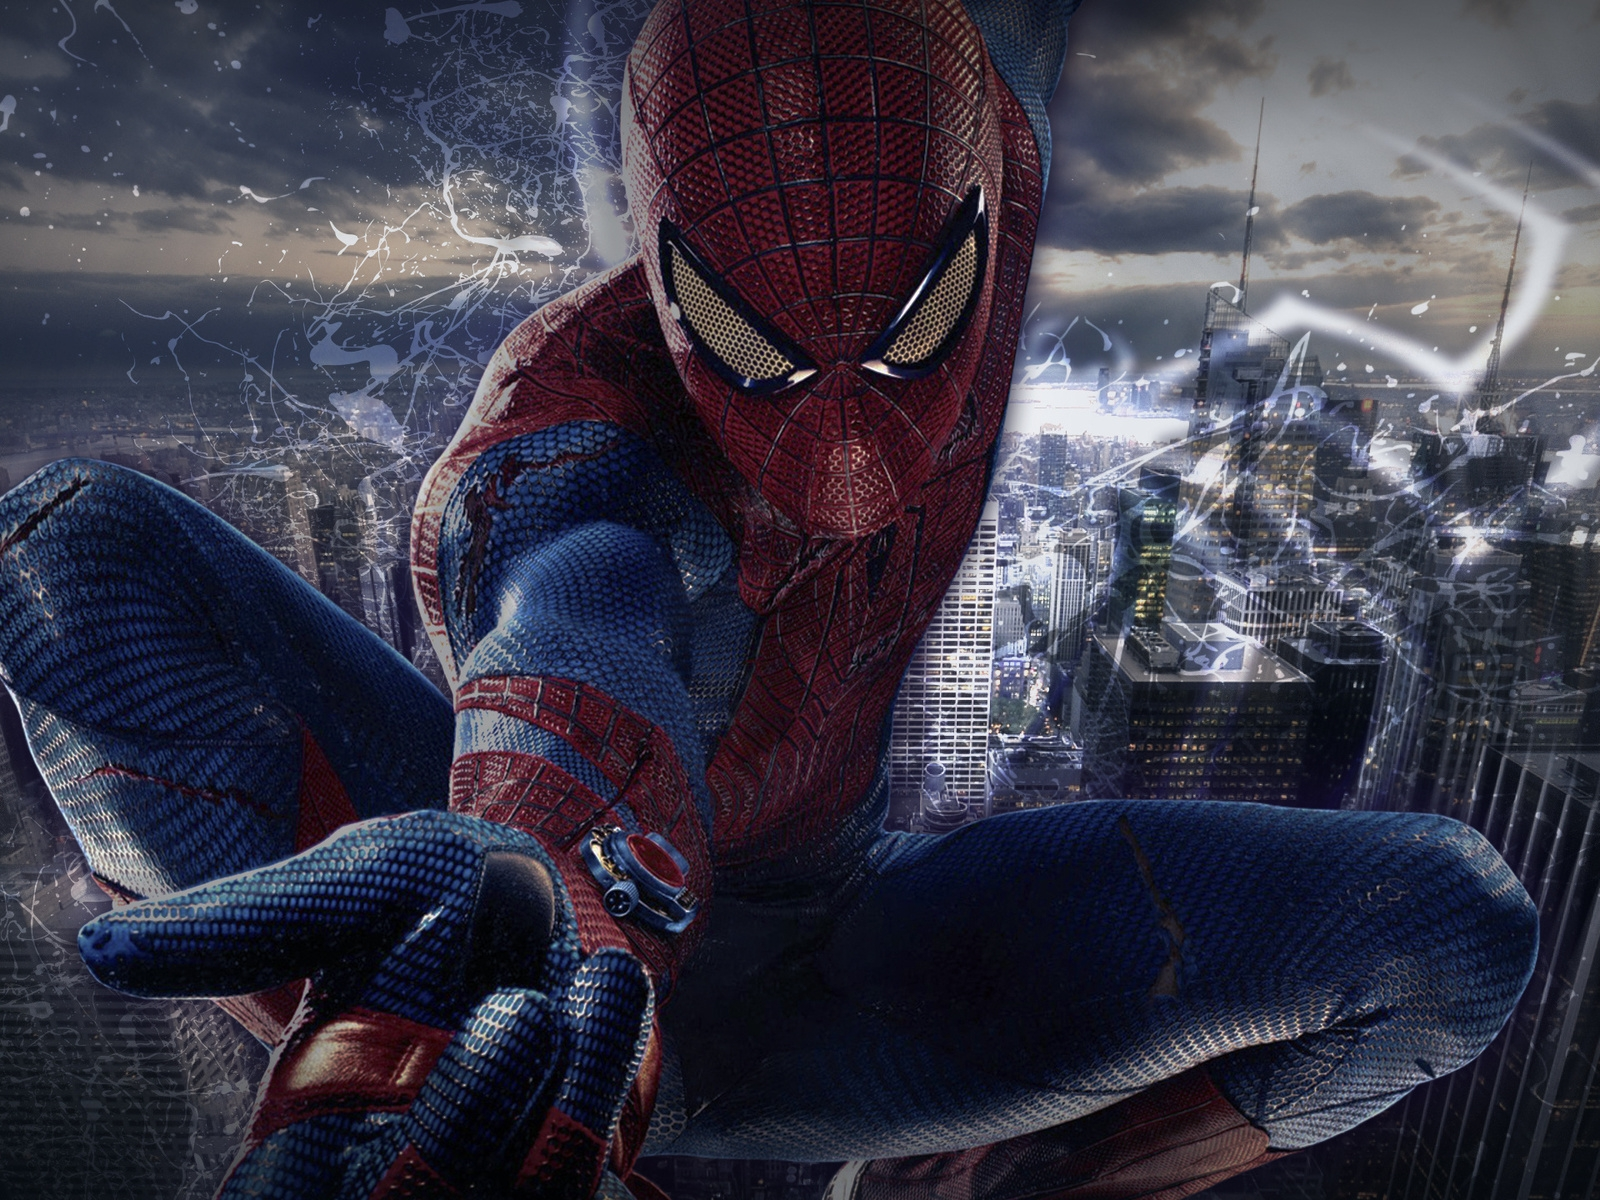 Spiderman Pose for 1600 x 1200 resolution